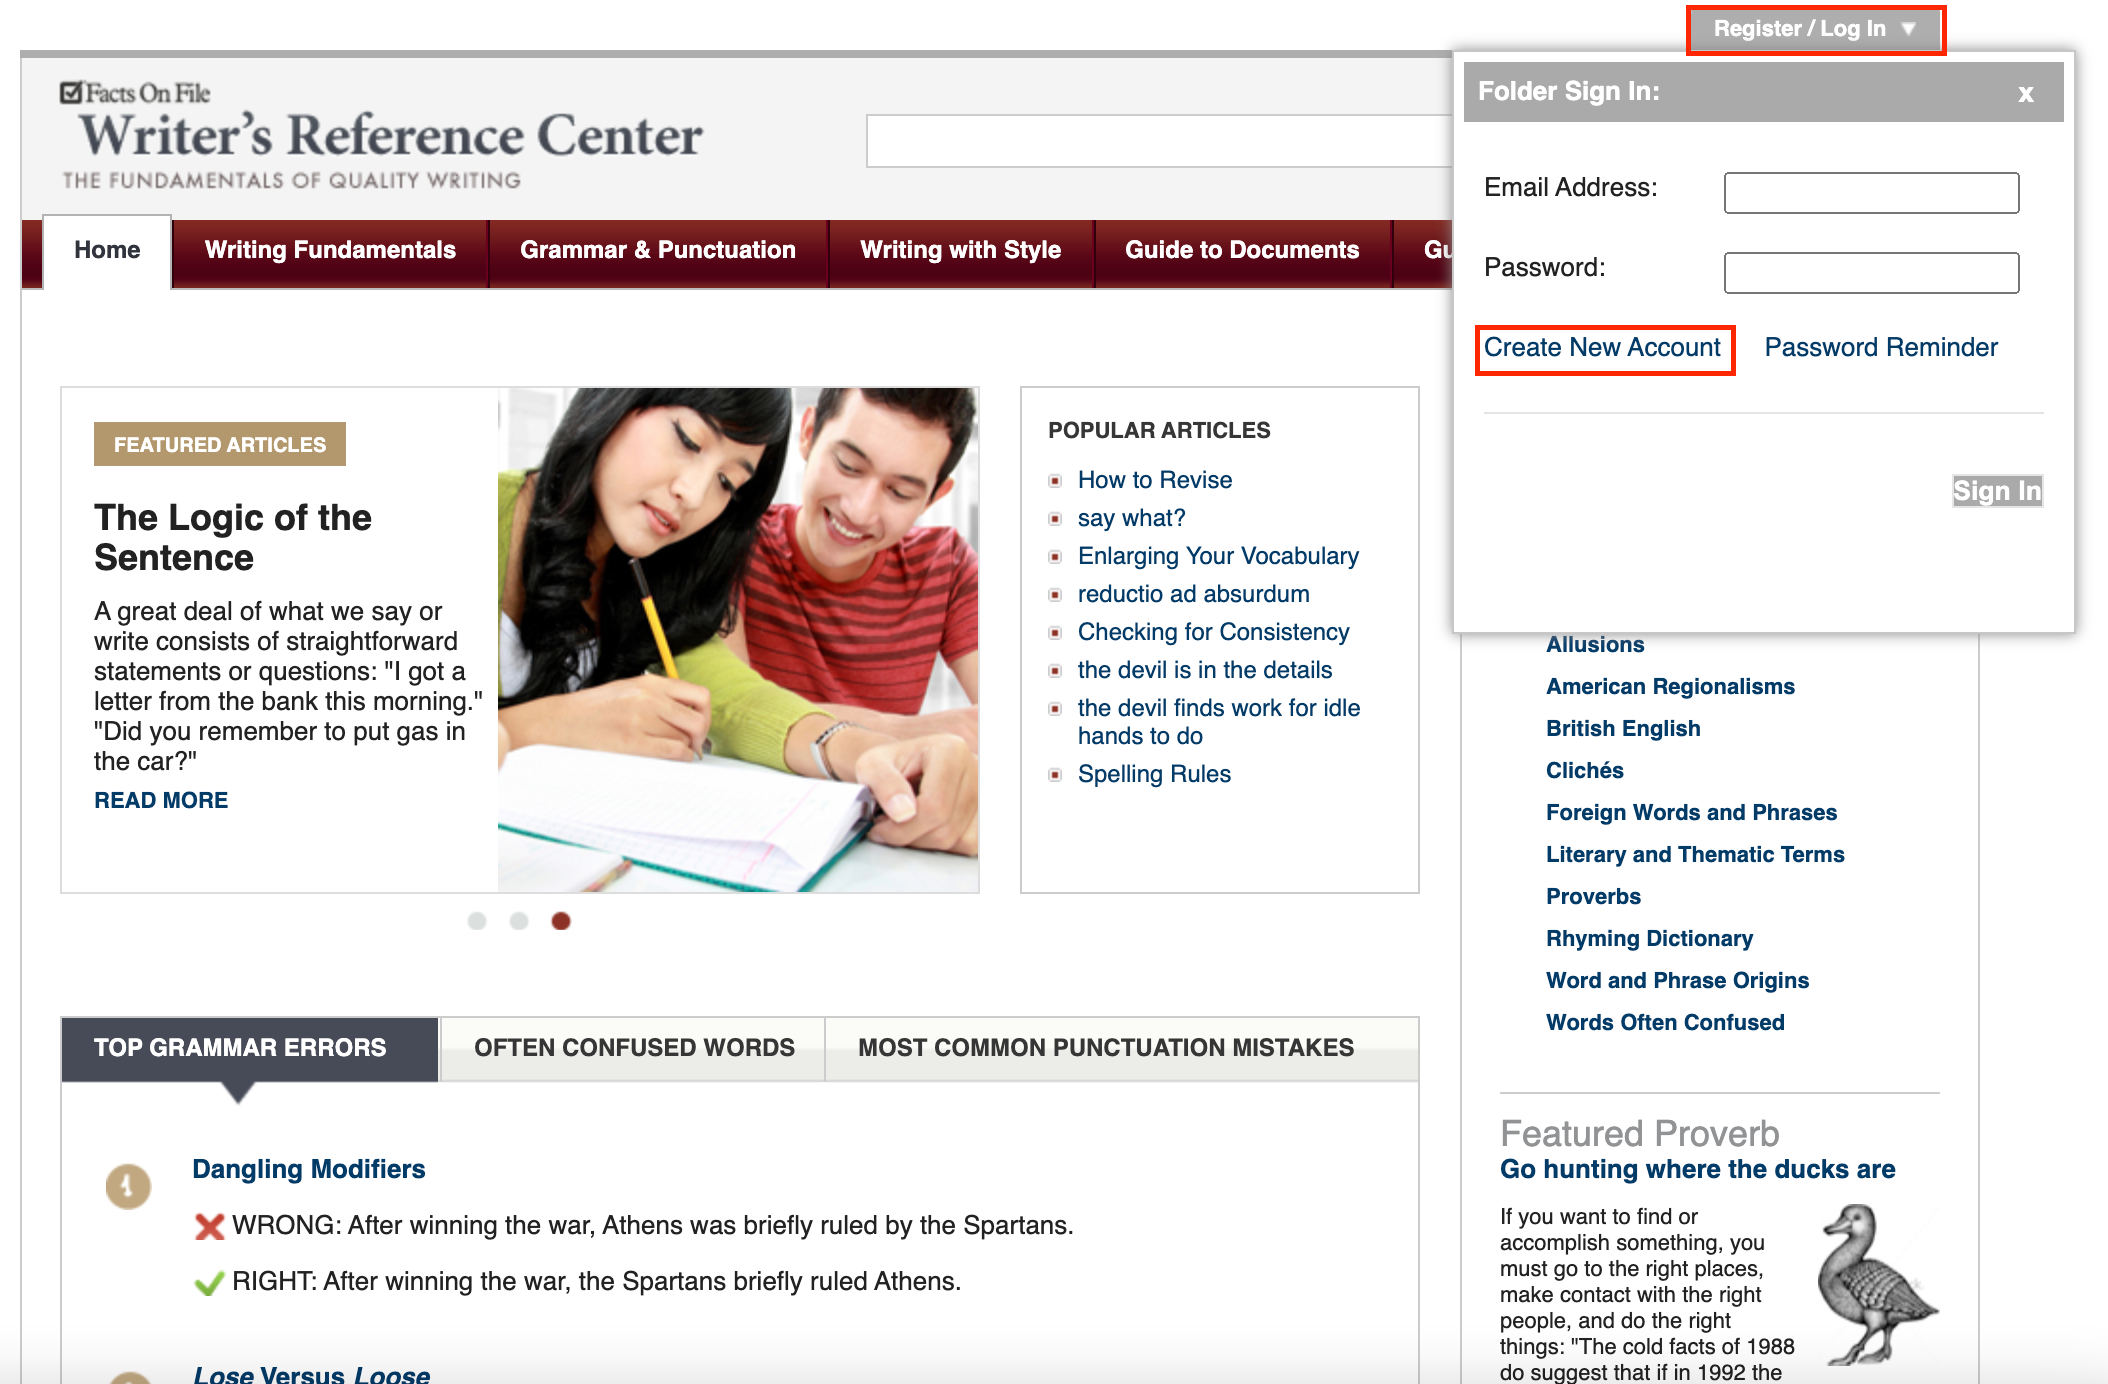 Writer's Reference Center Create New Account